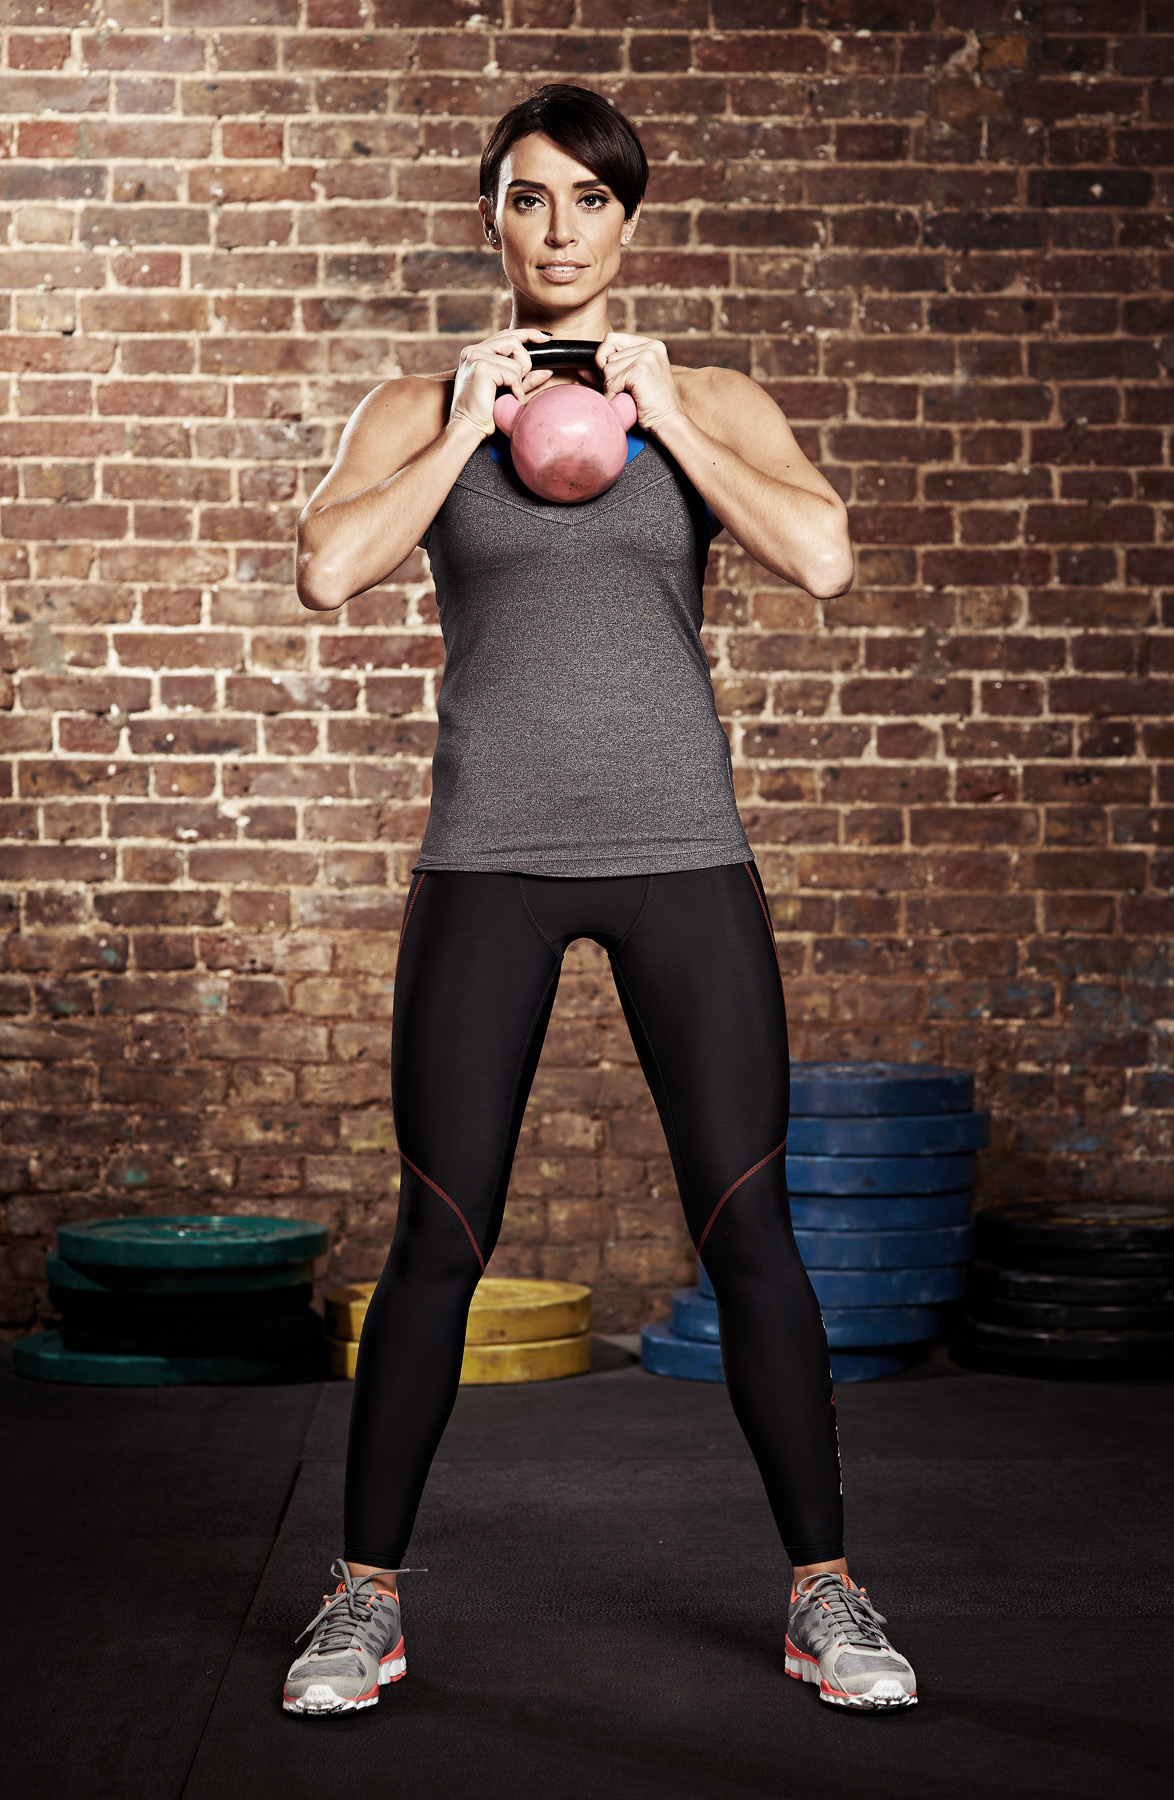 Christine Bleakley working out with a kettlebell